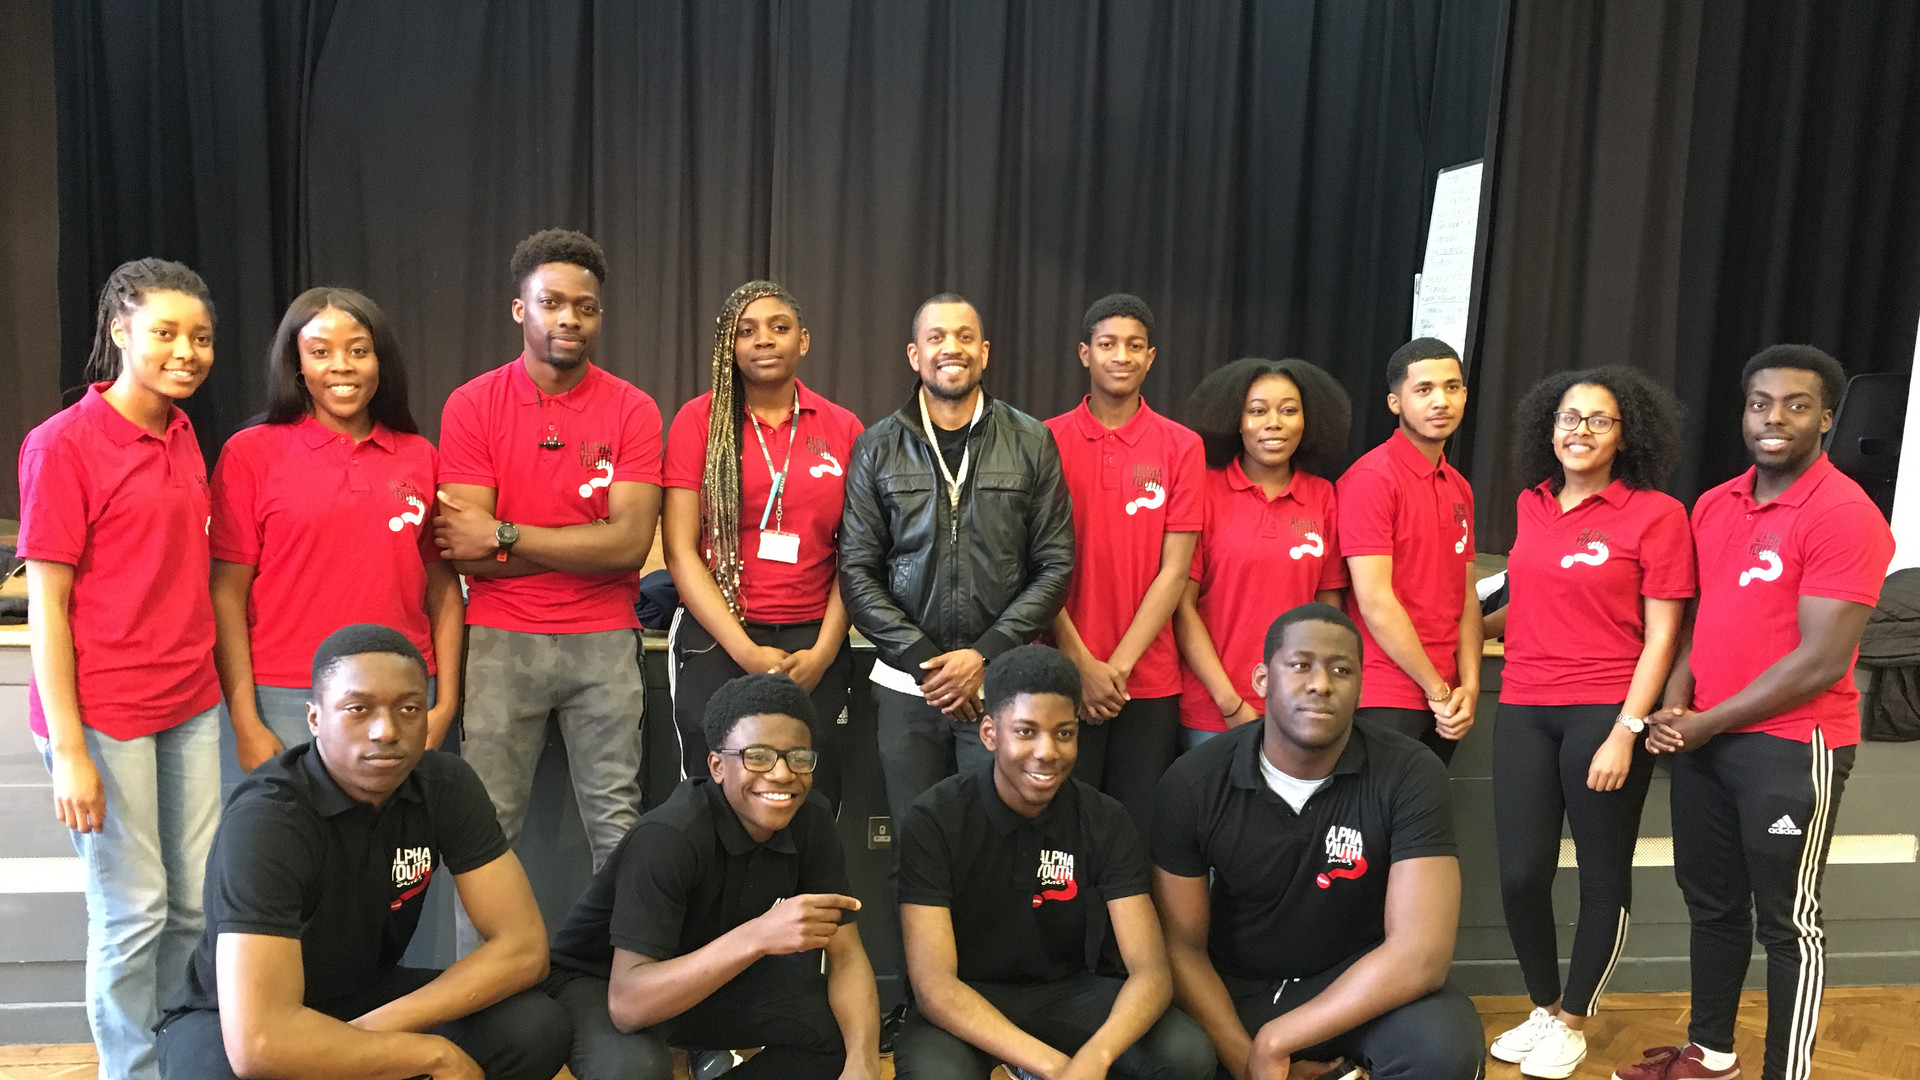 Leo and the Youth Alpha team, Chace Community School, Enfield